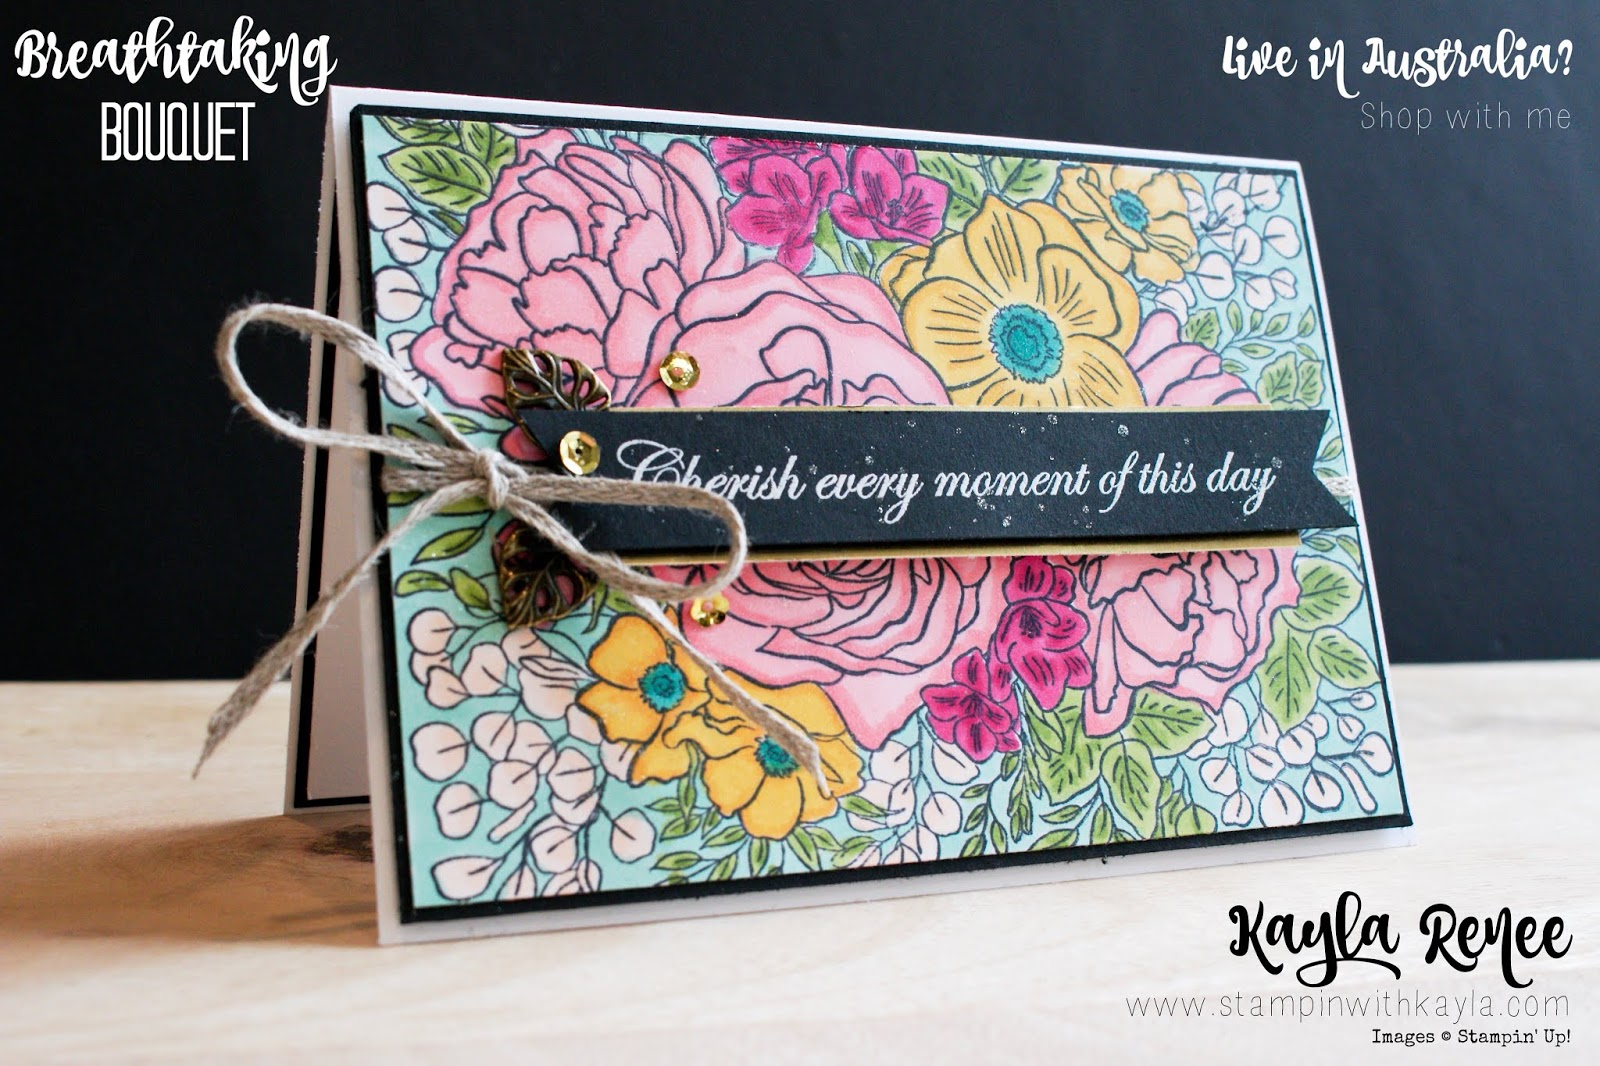 Breathtaking Bouquet & Stampin' Blends ~ Catalogue Sneak Peek